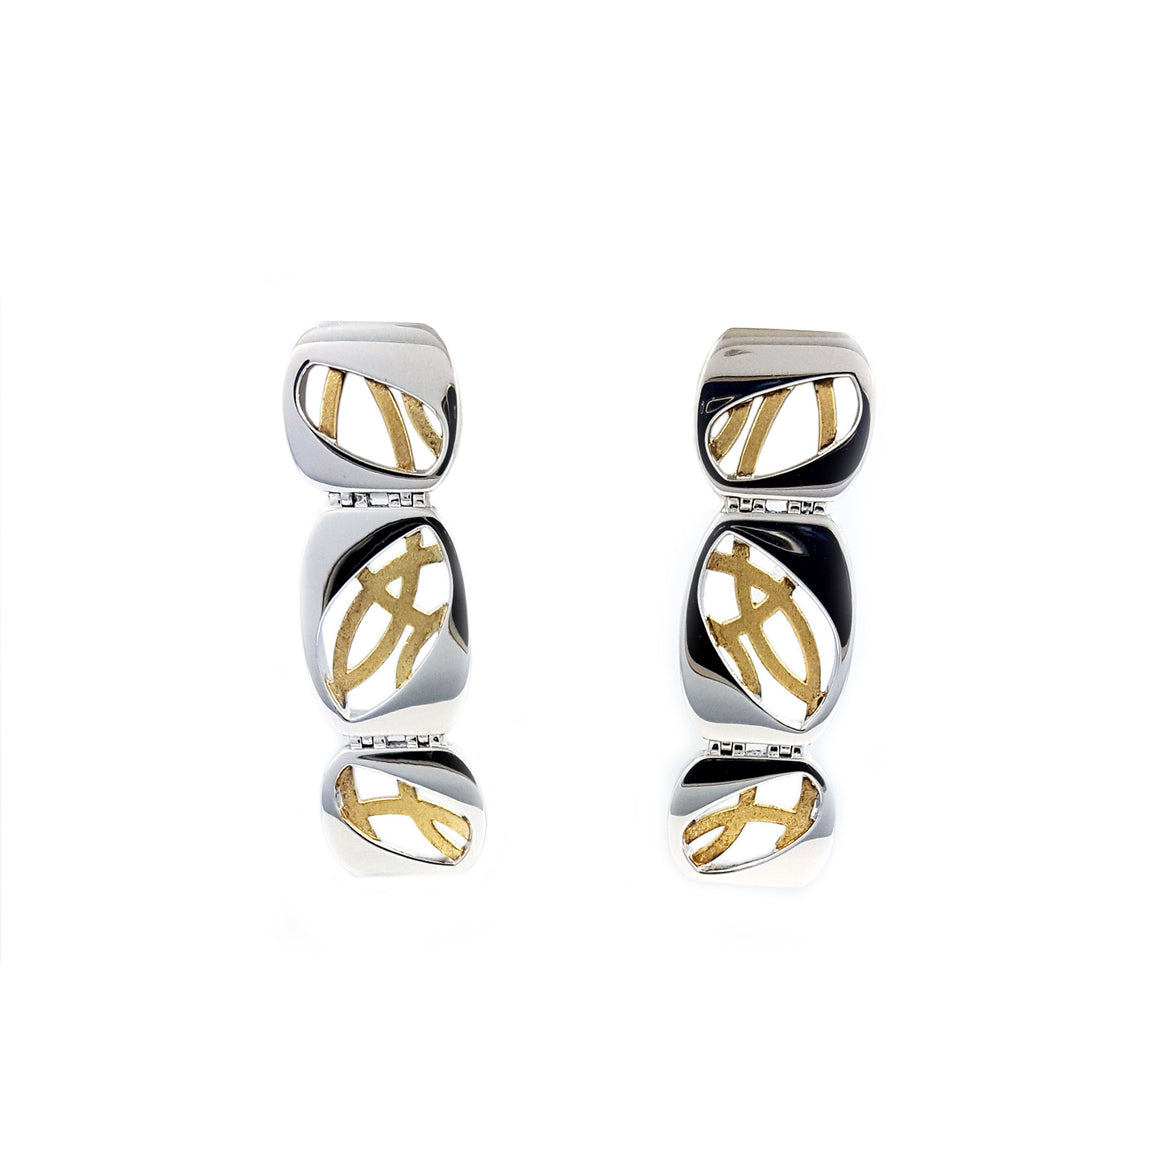 Silver earings with yellow gold